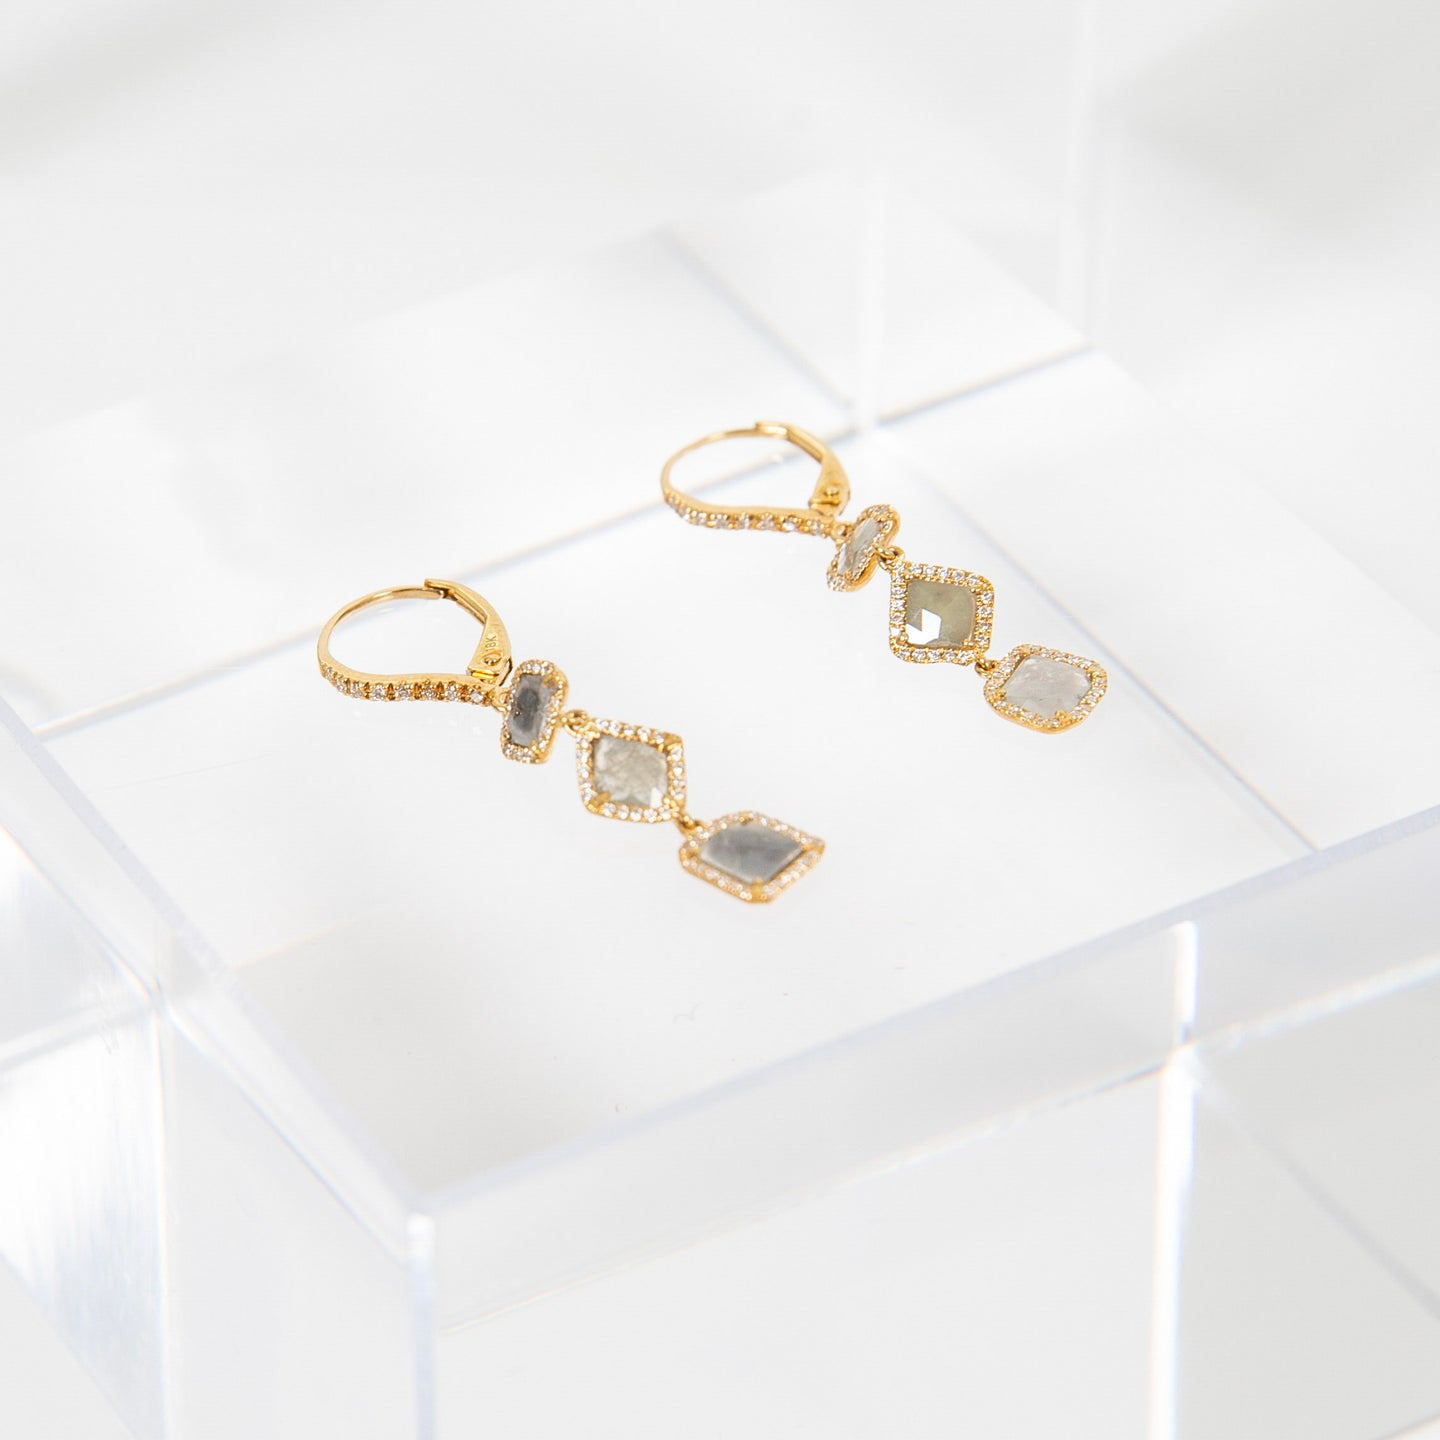 Liven One-of-a-kind Yellow Gold Diamond Earrings